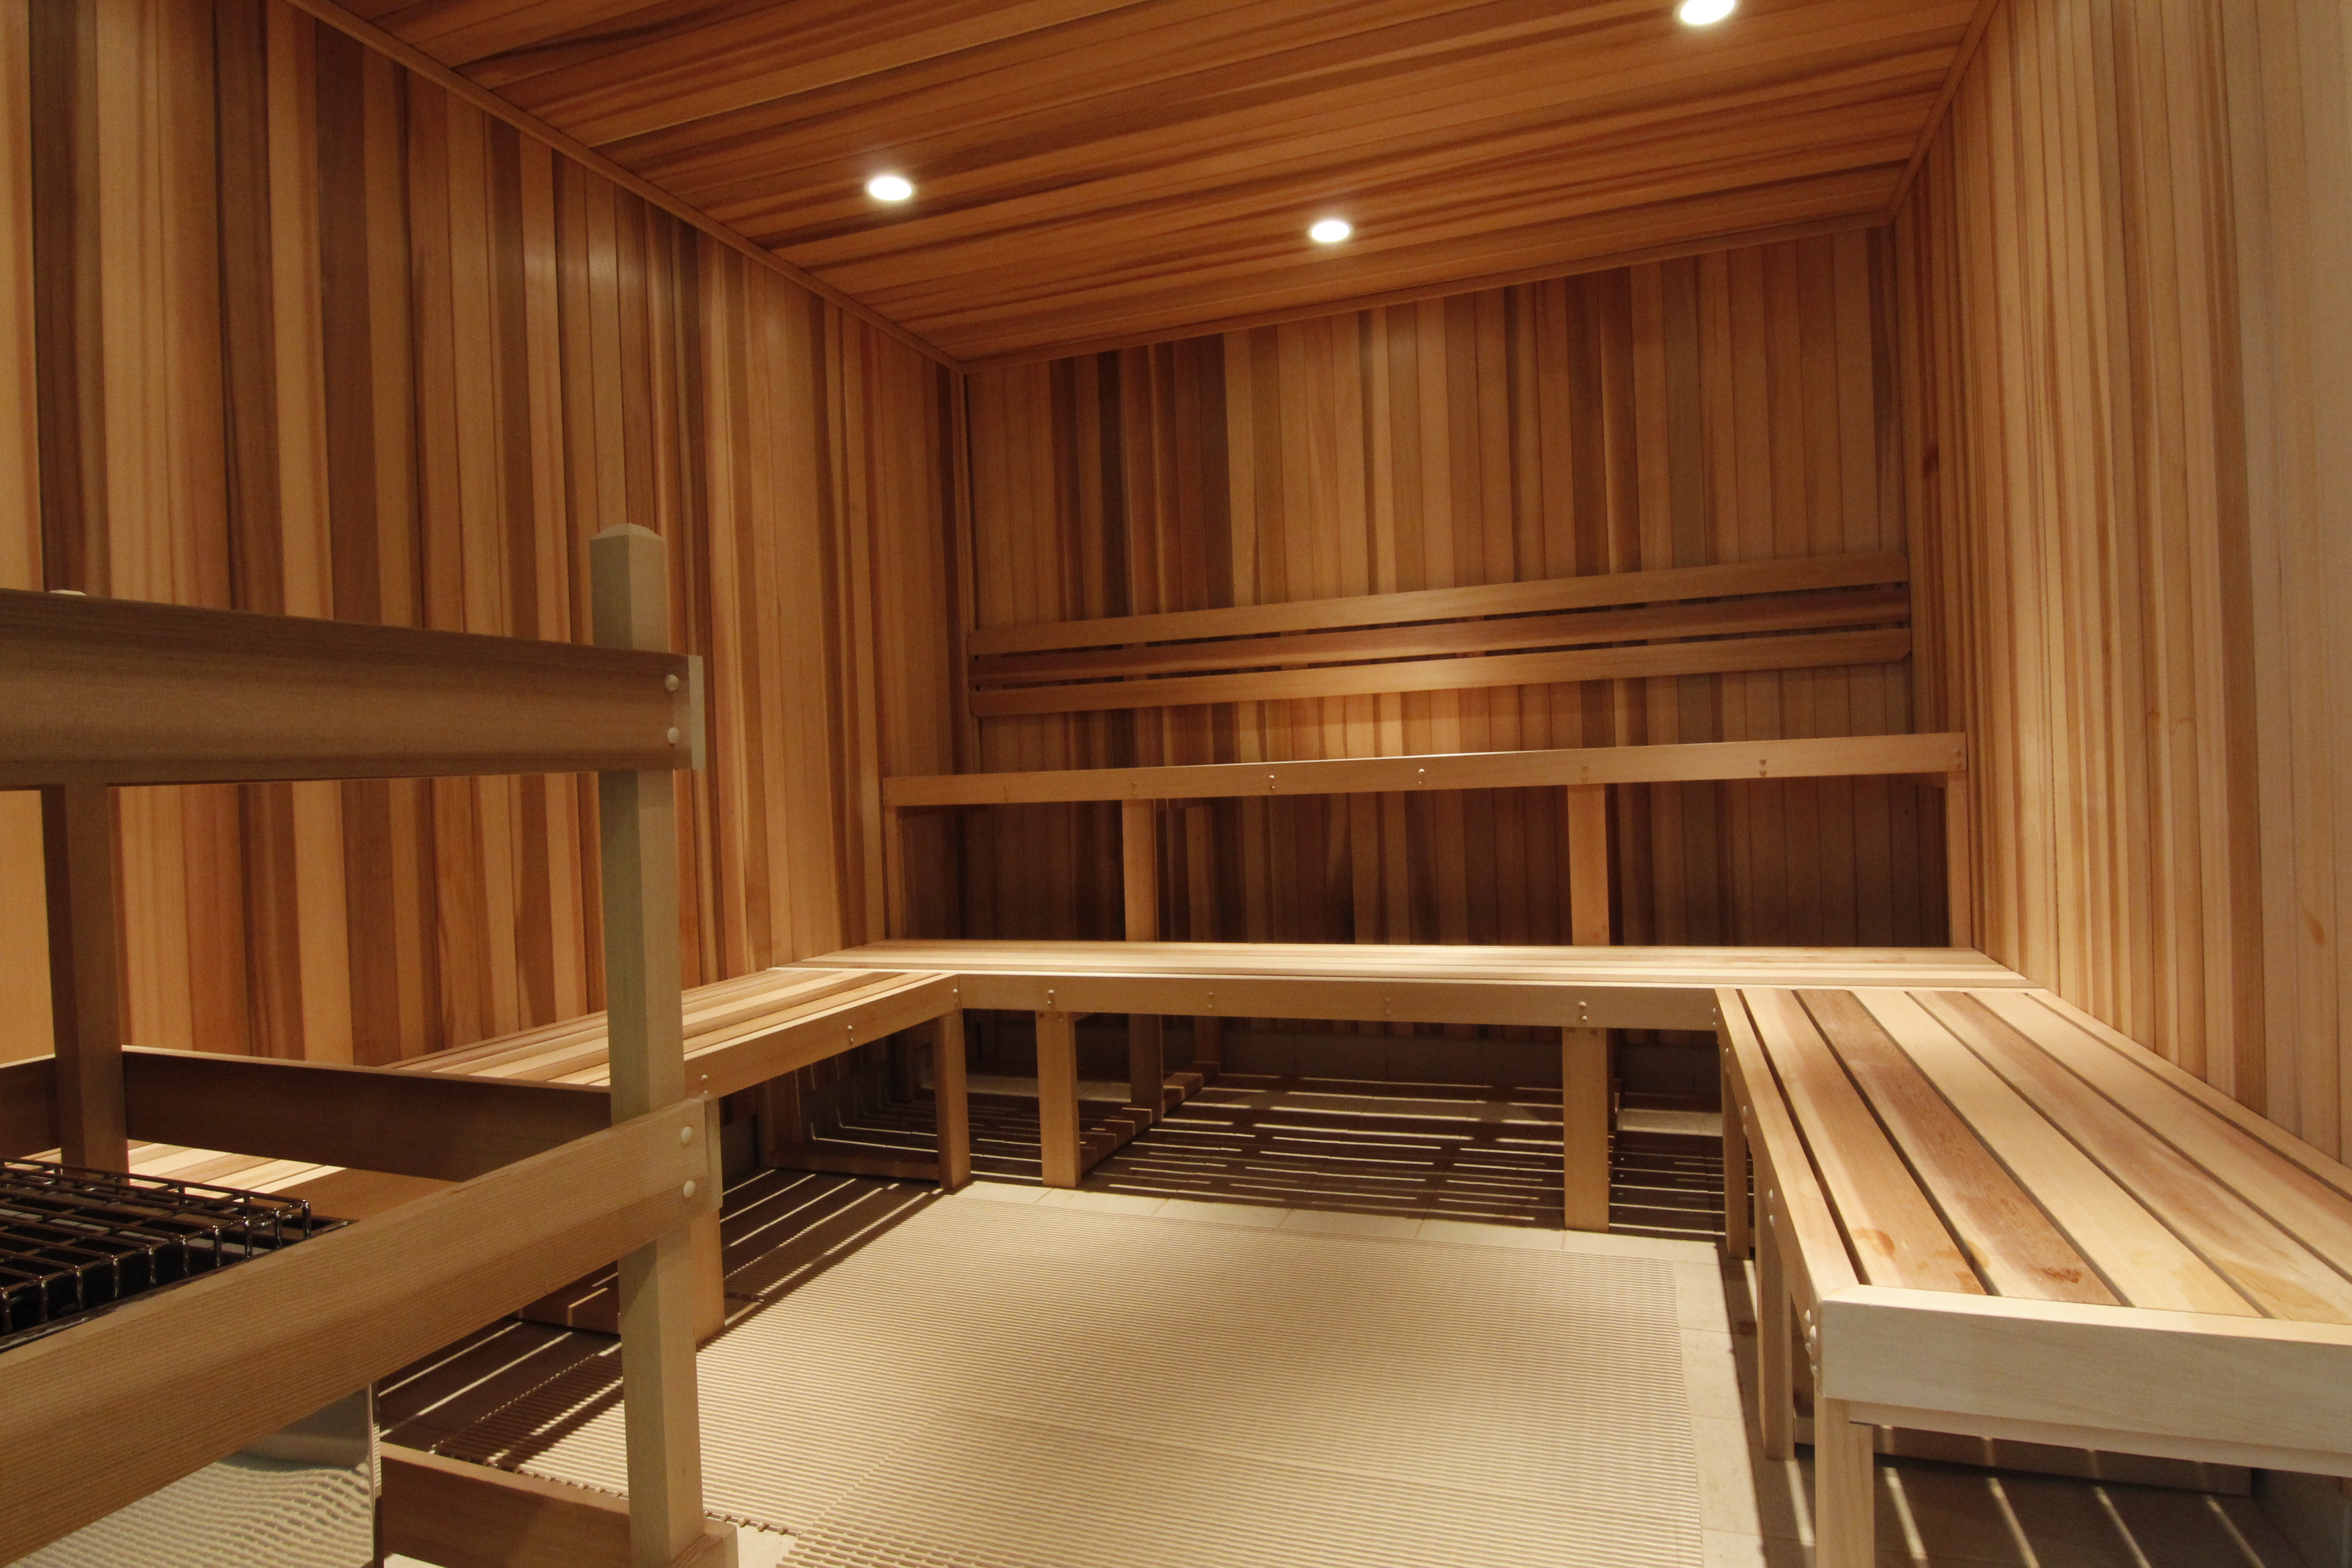 The Preferred Supplier Of Custom Wine Cellars U0026 Saunas U2022 Inviniti .